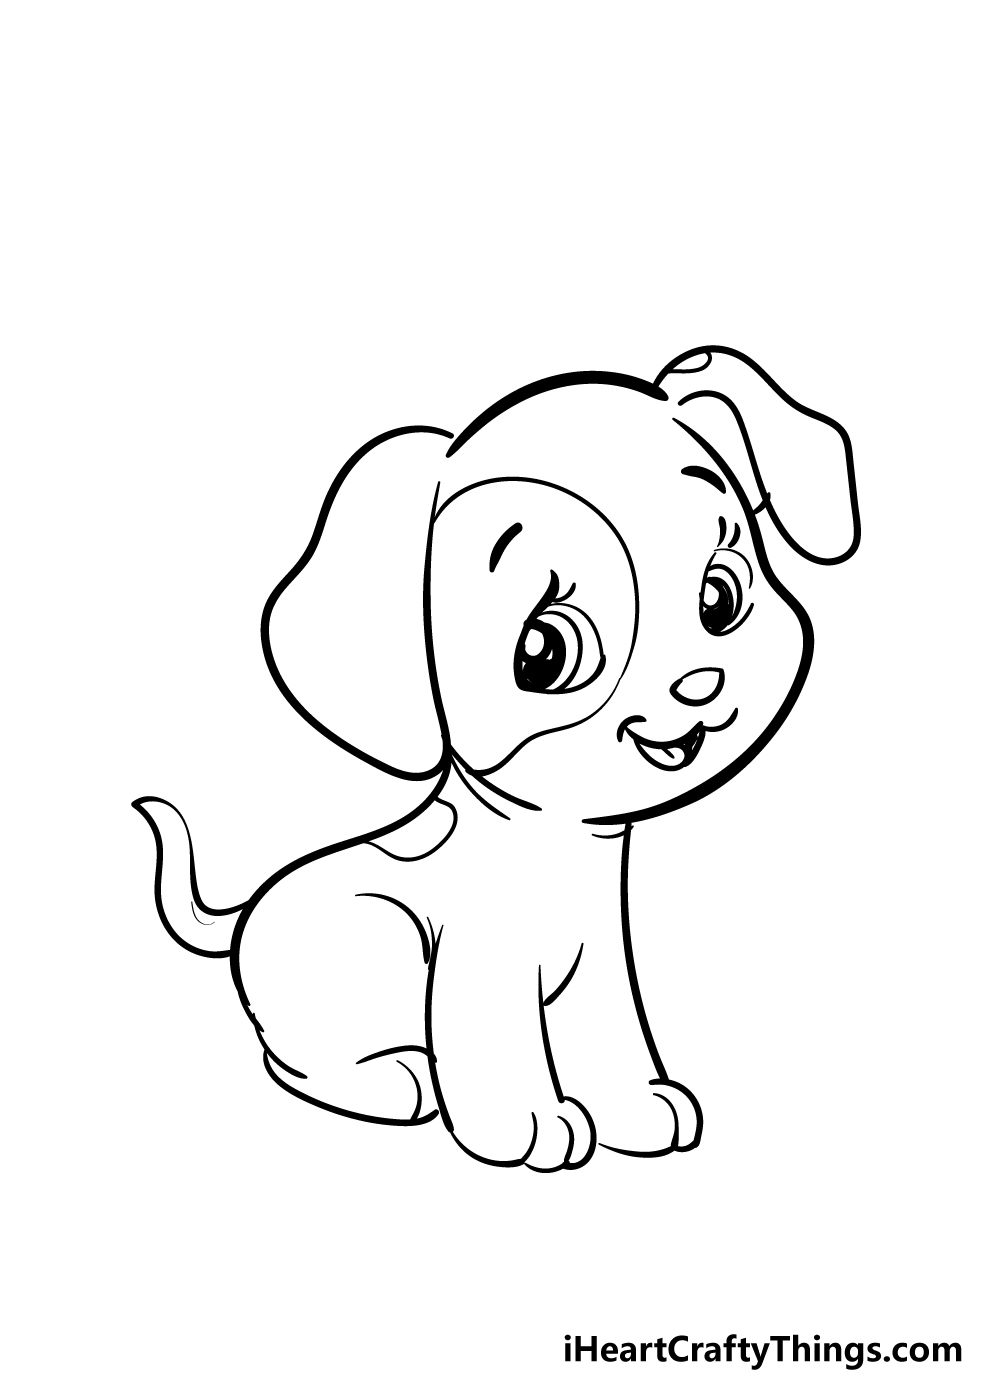 puppy drawing step 7